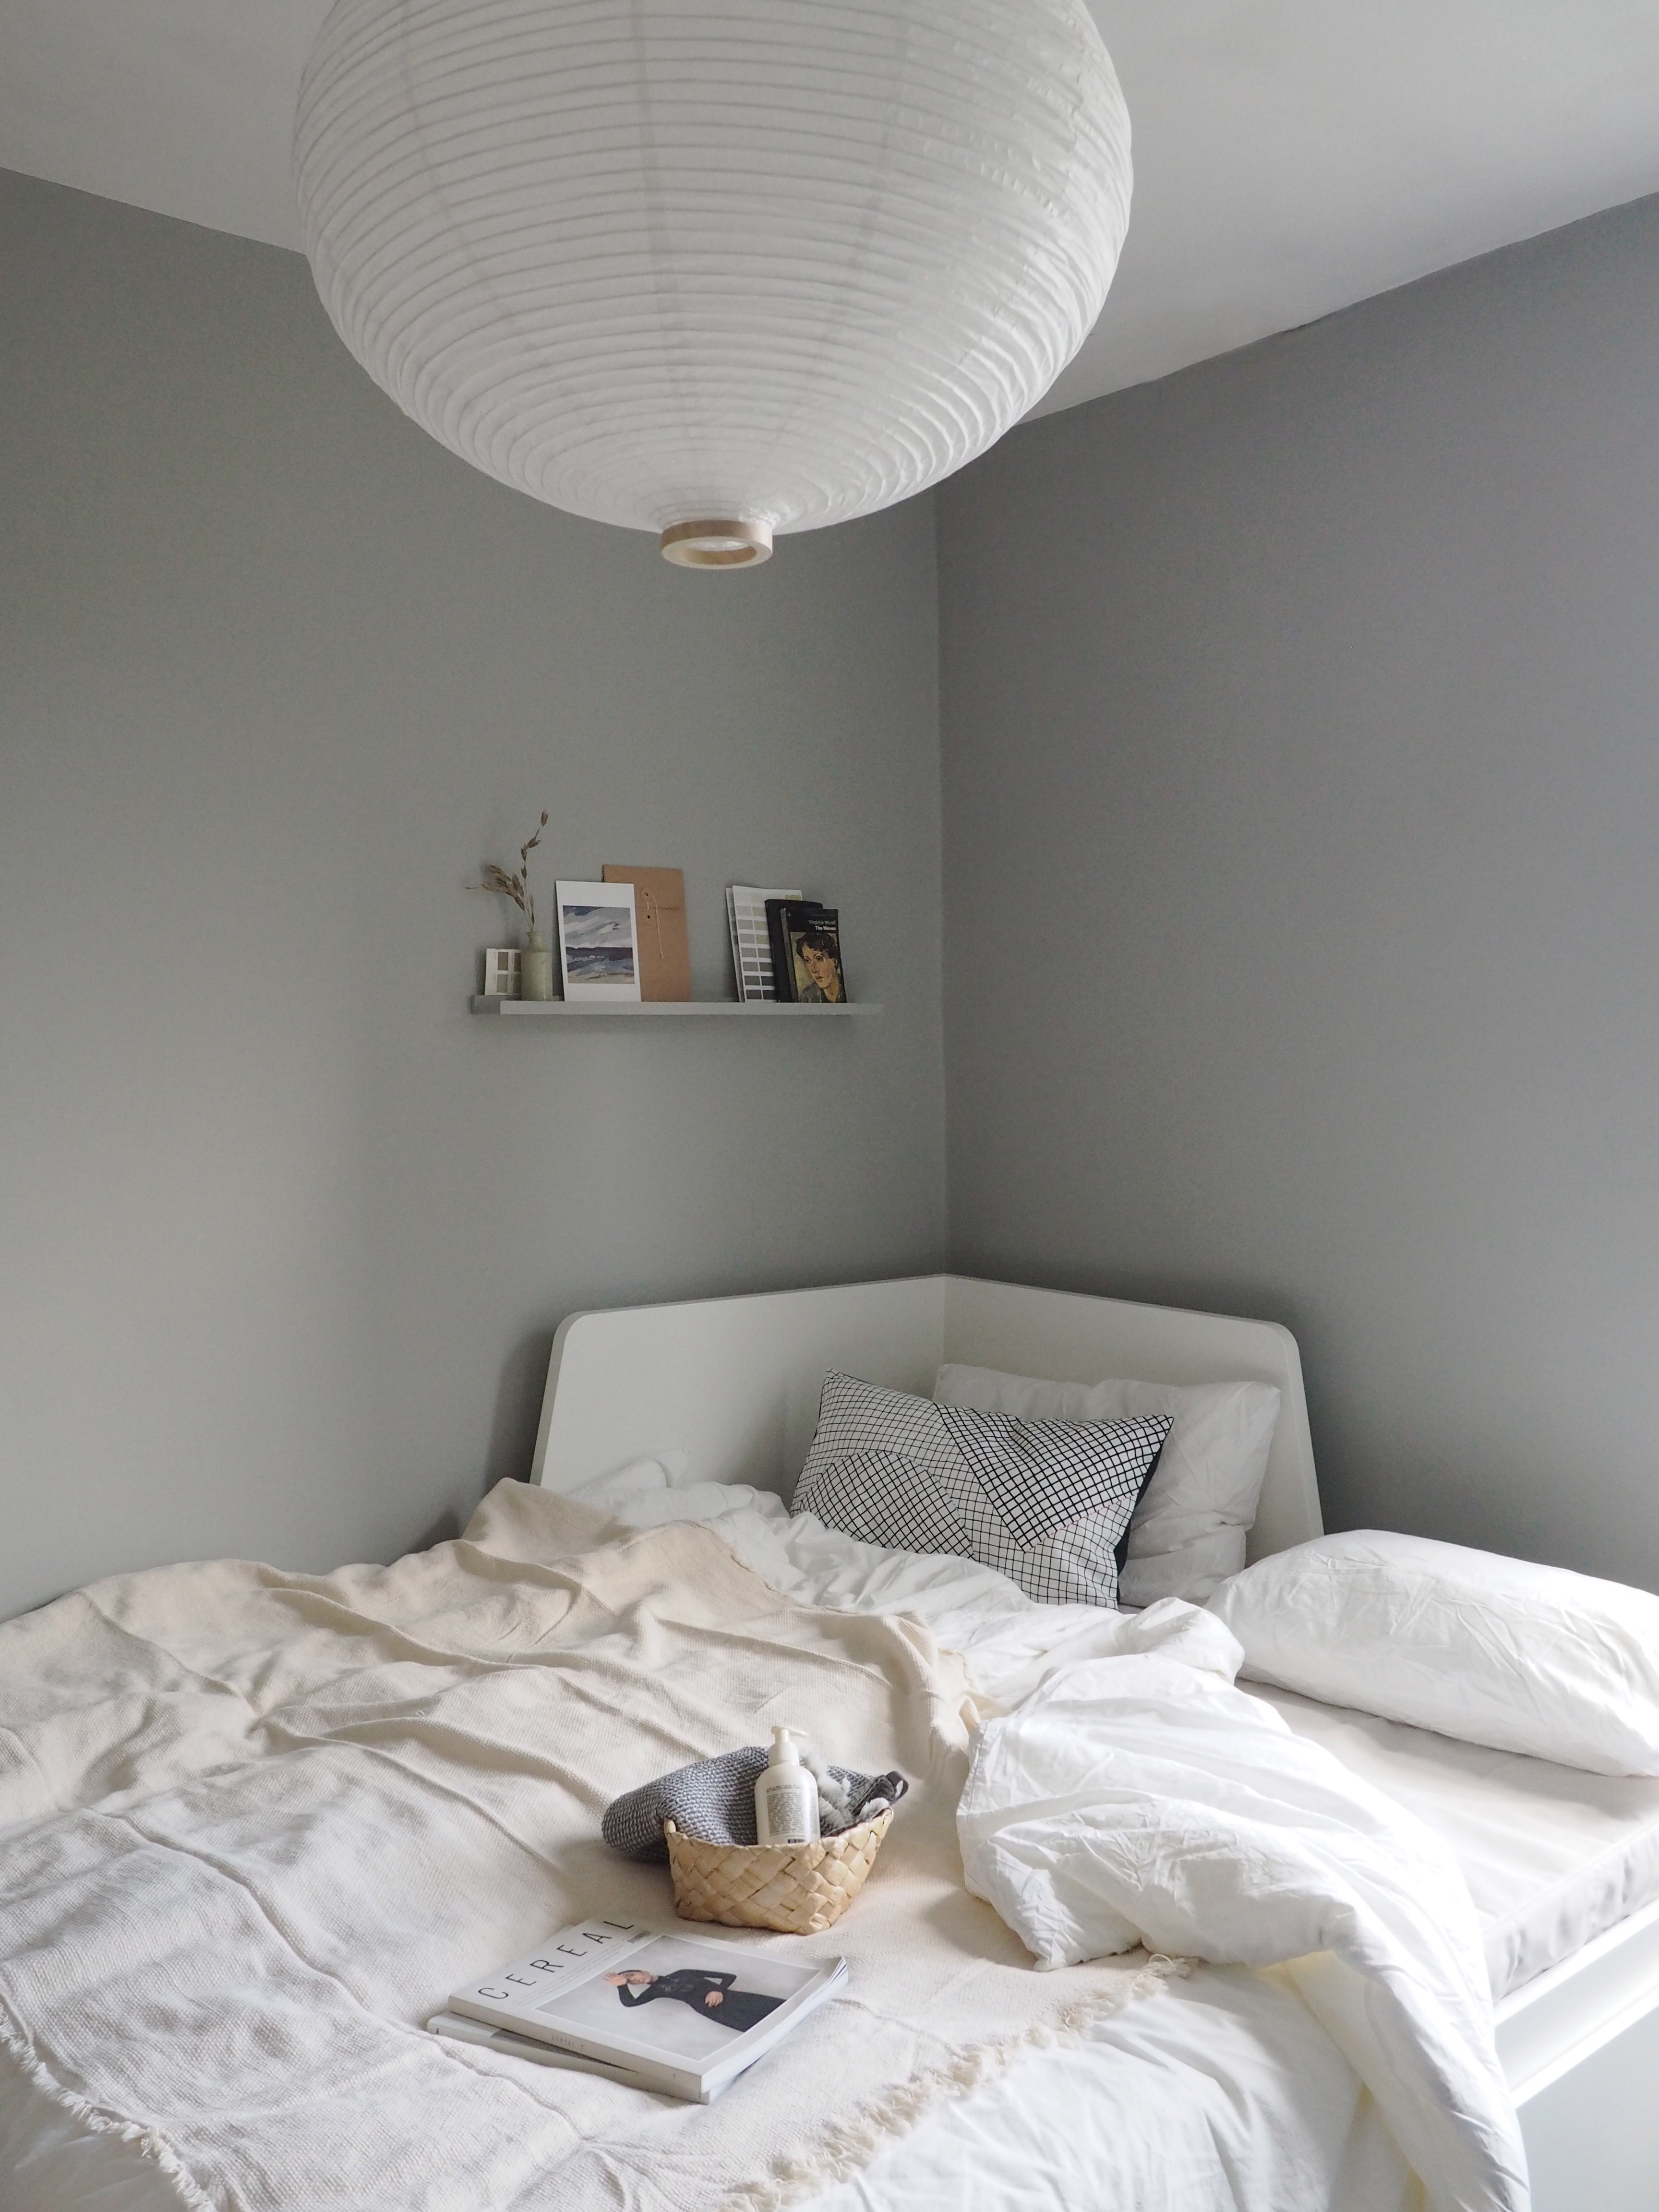 Image of: Guest Room Ideas Day Bed Pull Out Bed Japanese Paper Lantern Light Cate St Hill